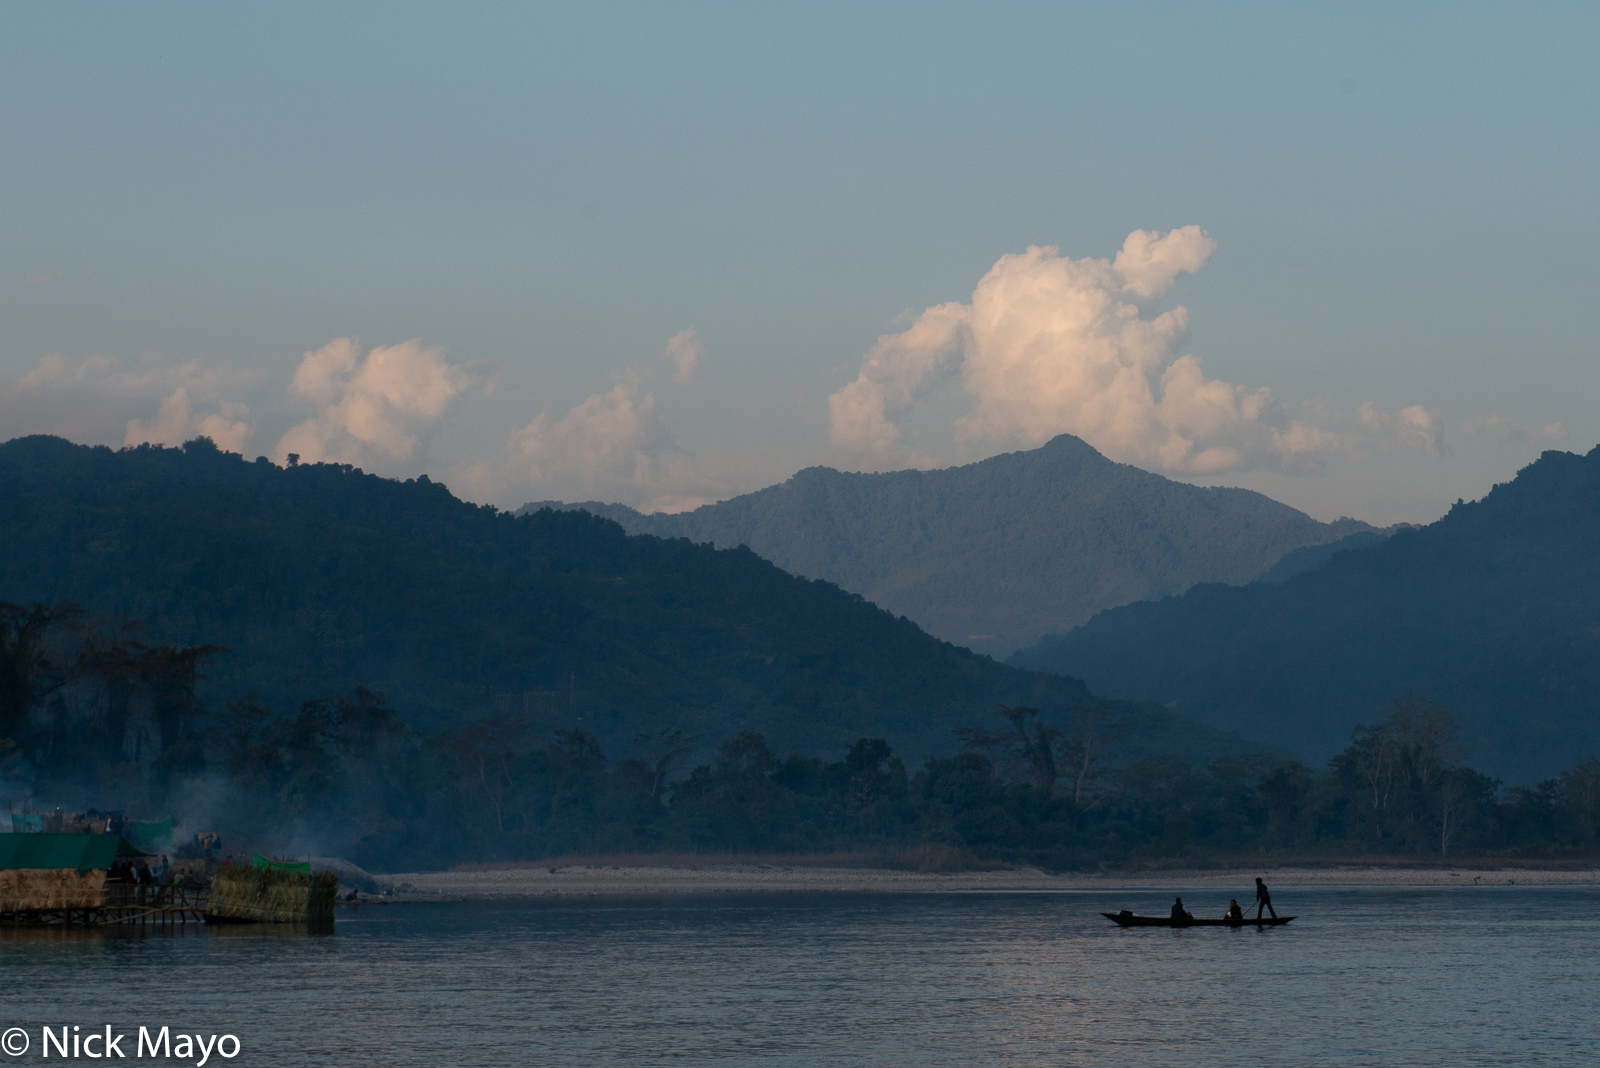 A boat being rowed across the Siang river at Aalo just before dusk.